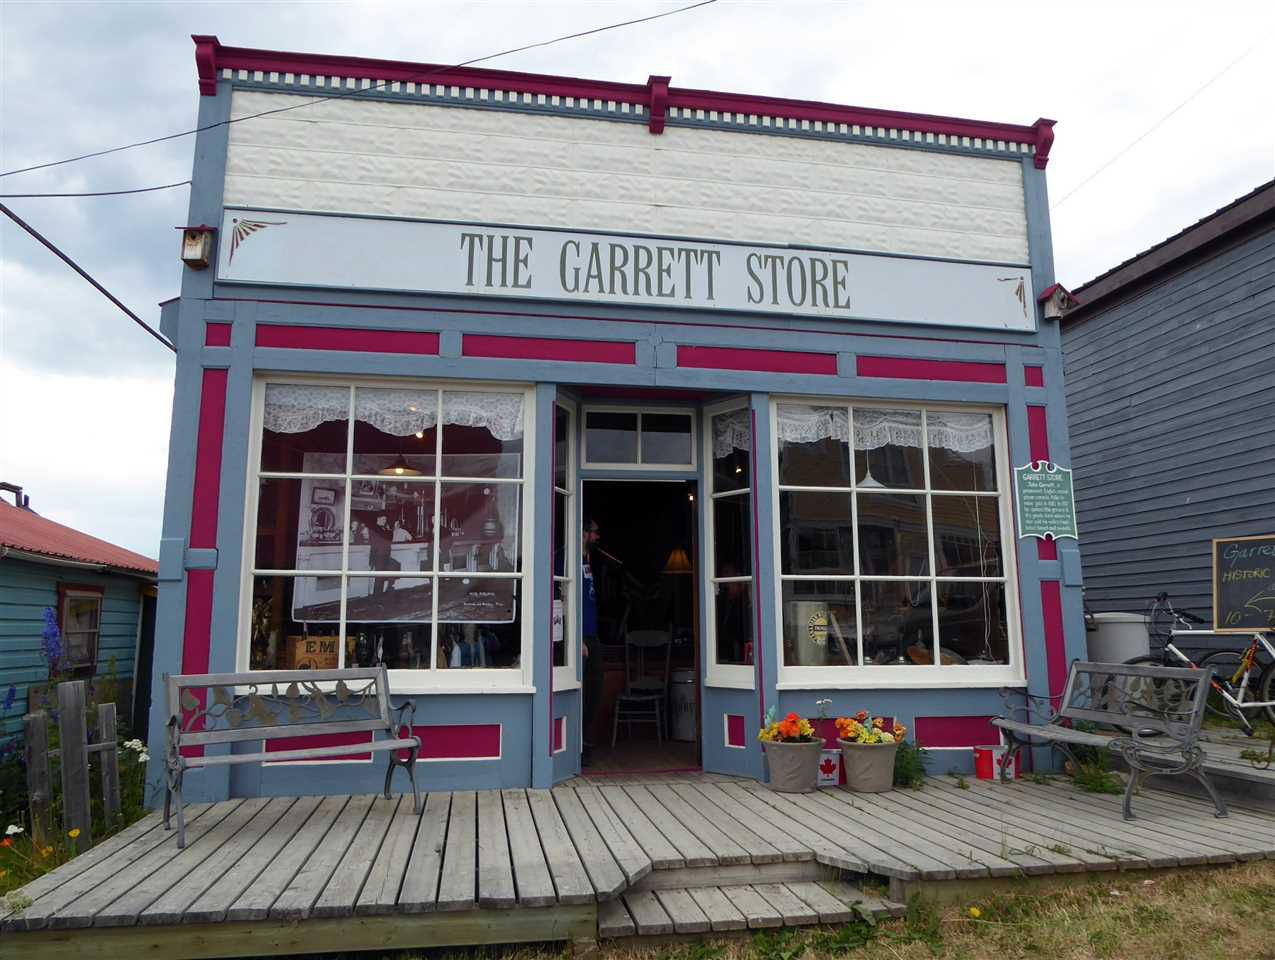 The Garret Store was built in 1917, after fire destroyed most of the town core and operated by John and Mary Garrett as a general store until 1941. They sold groceries, dry goods, raw furs and Mrs. Garrett's fresh baked bread.